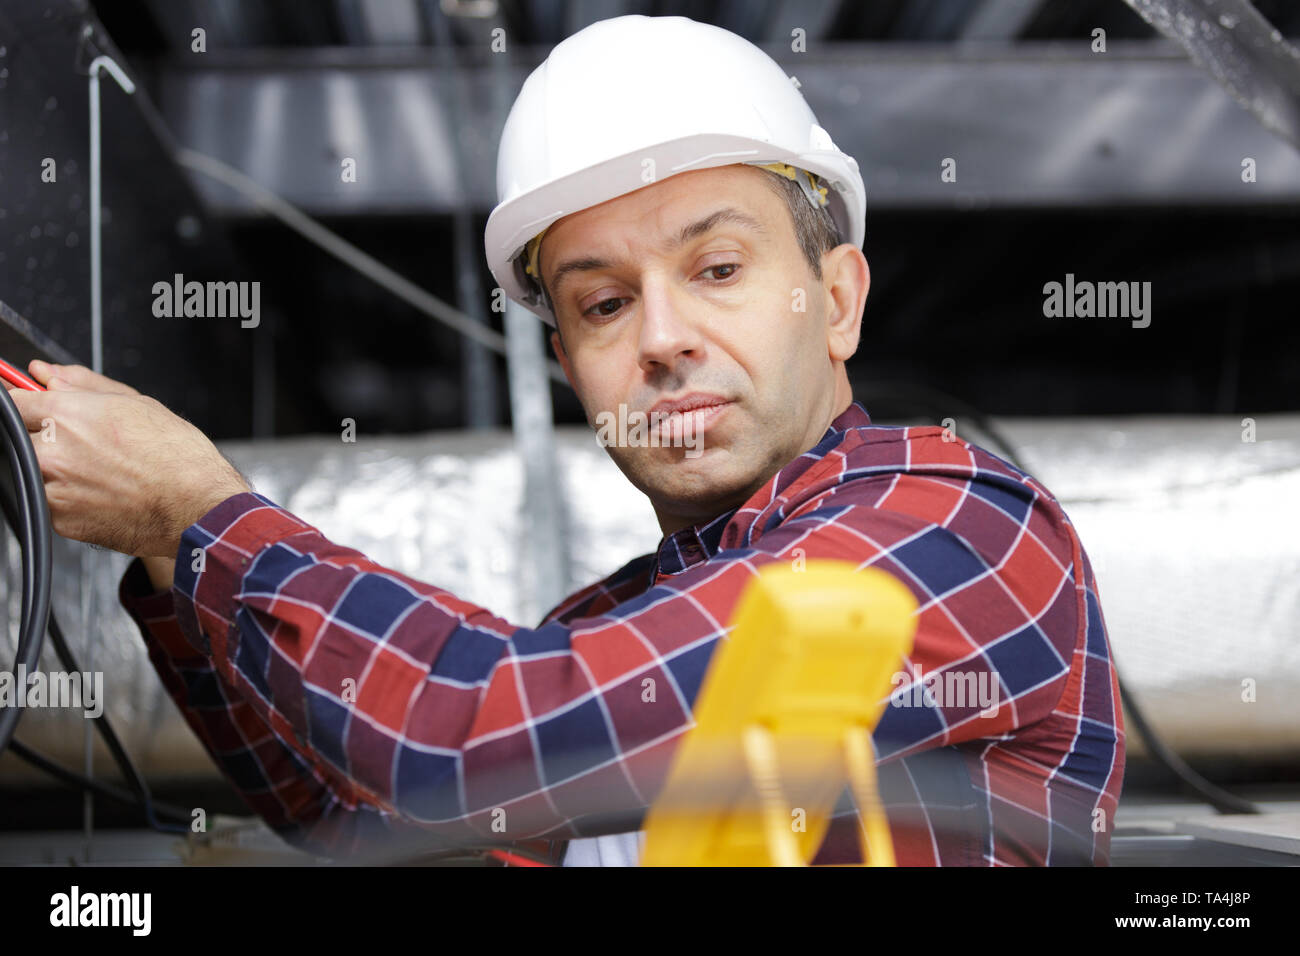 electrician measuring voltage of cables - Stock Image